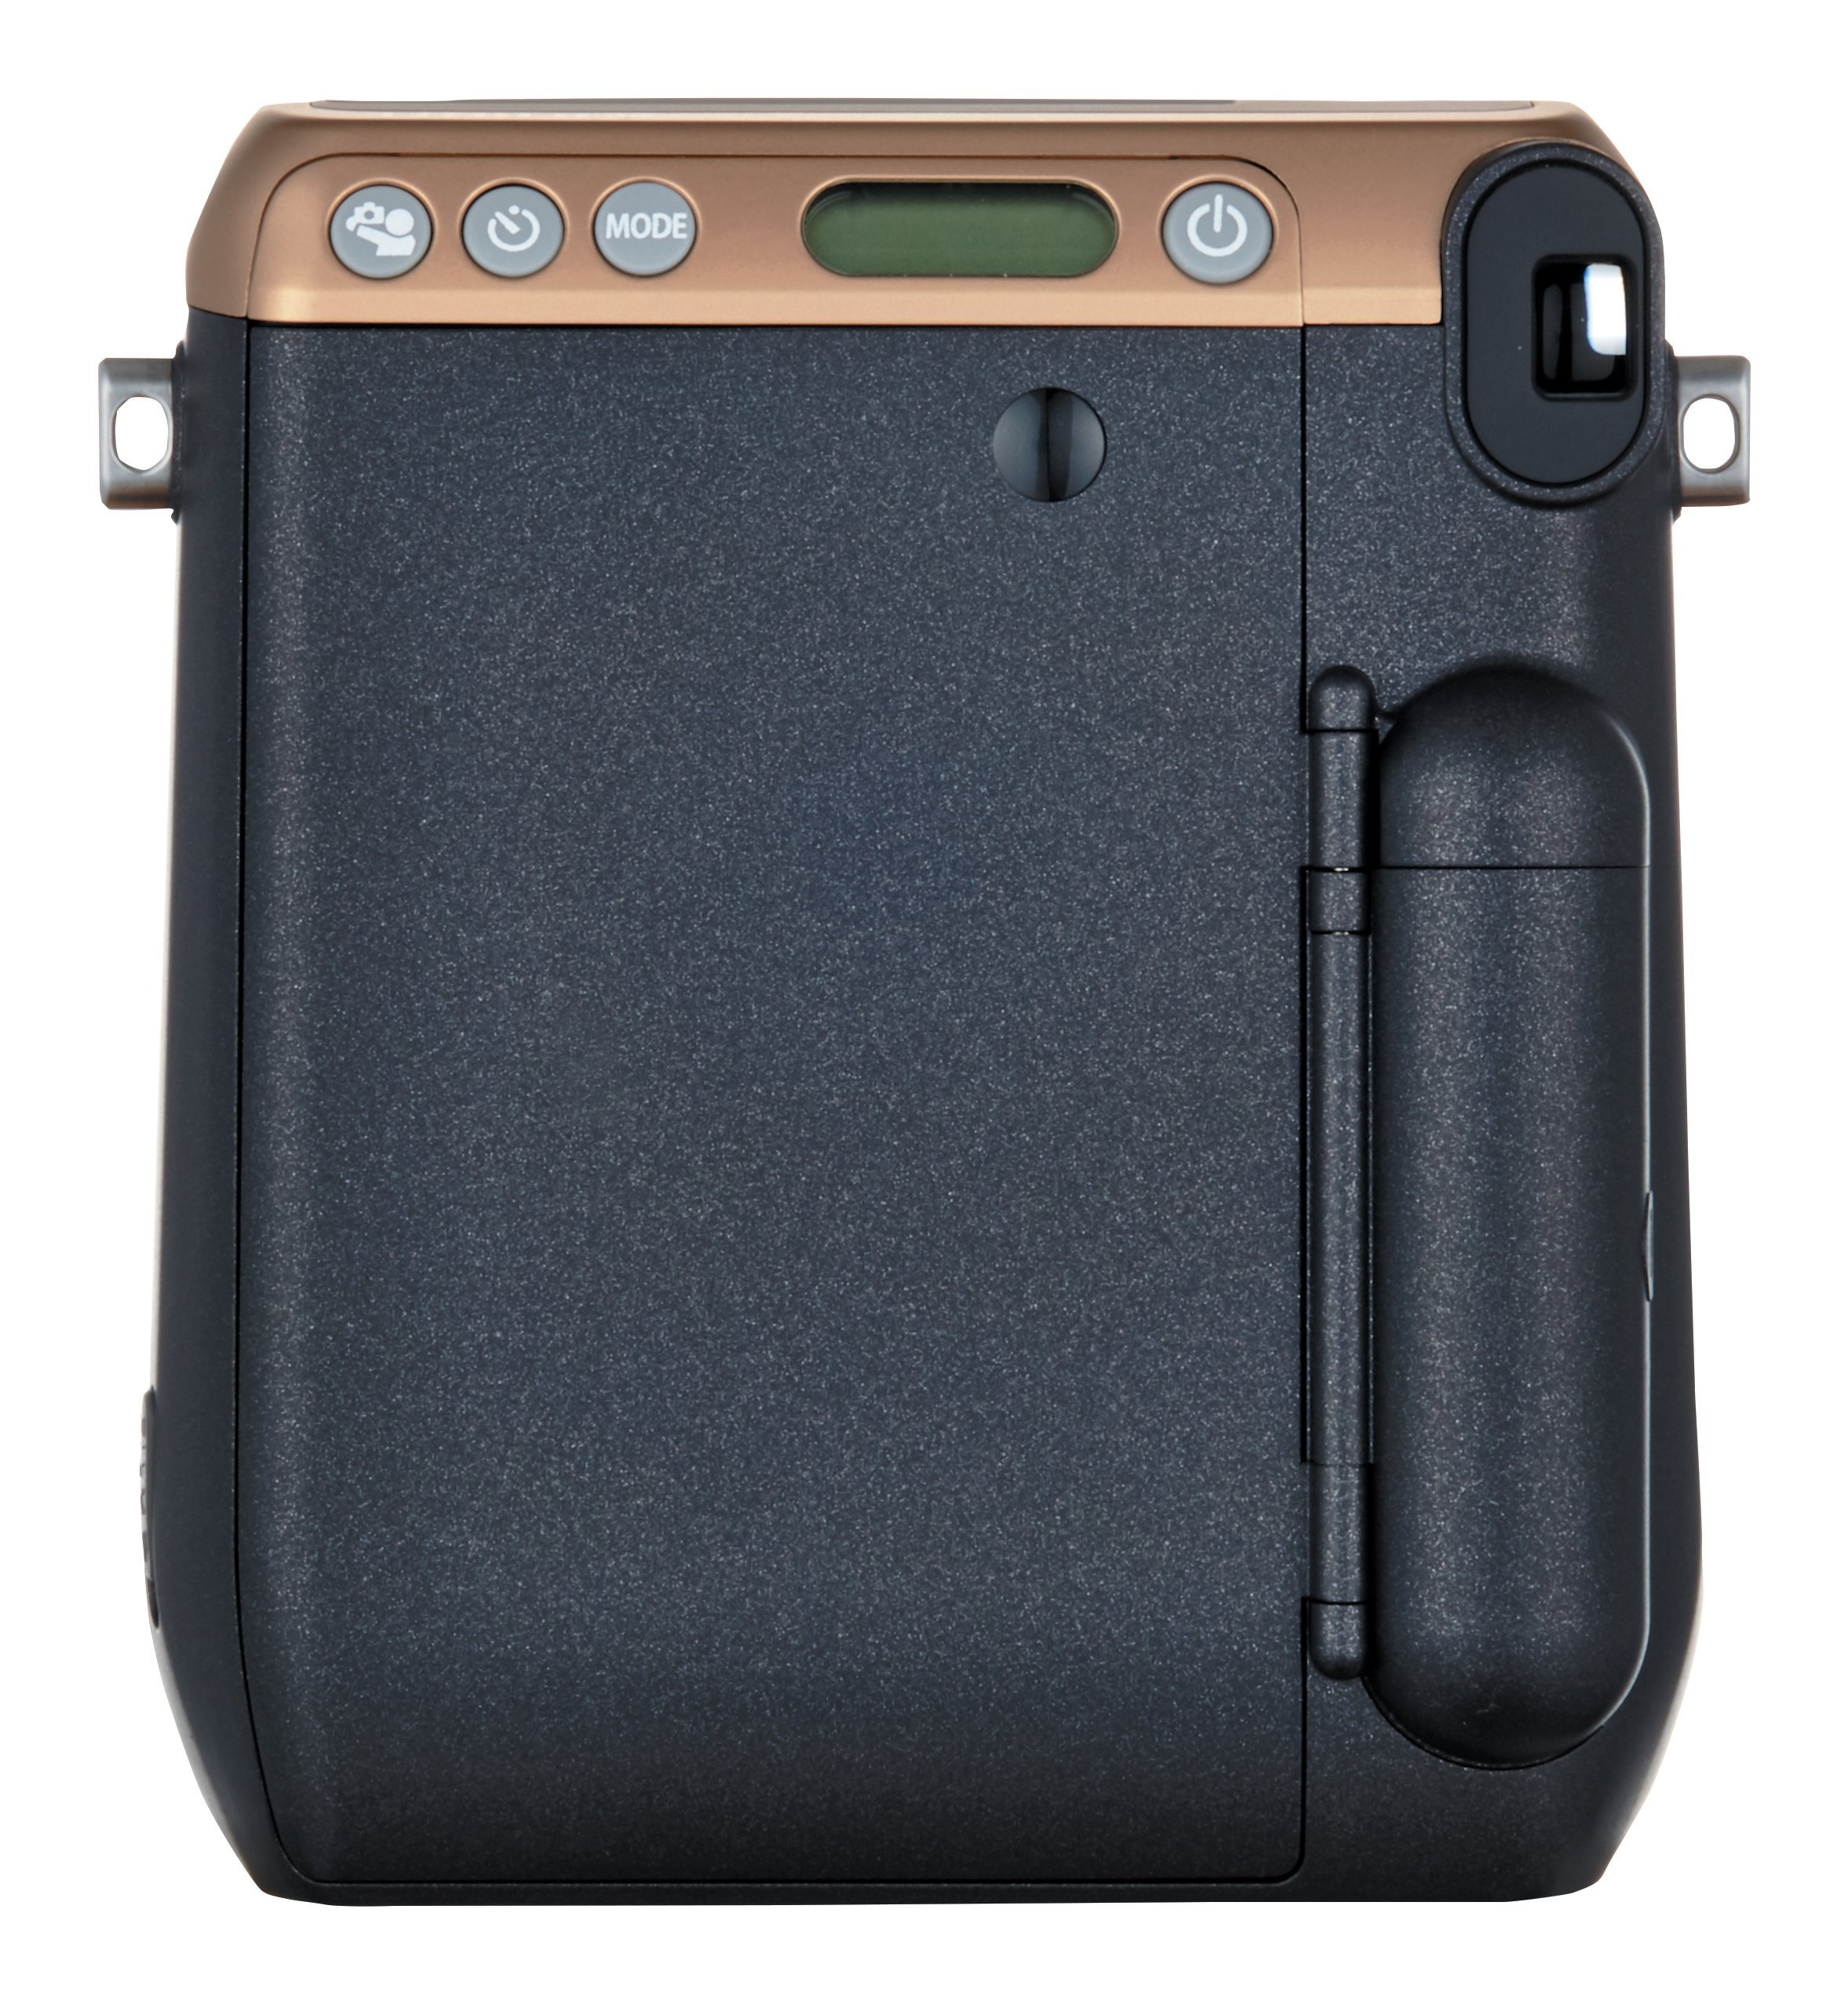 Fuji 16513920 Instax Mini 70 Stardust Gold Perp Higher Quality IMages Selfie Mode by Fujifilm